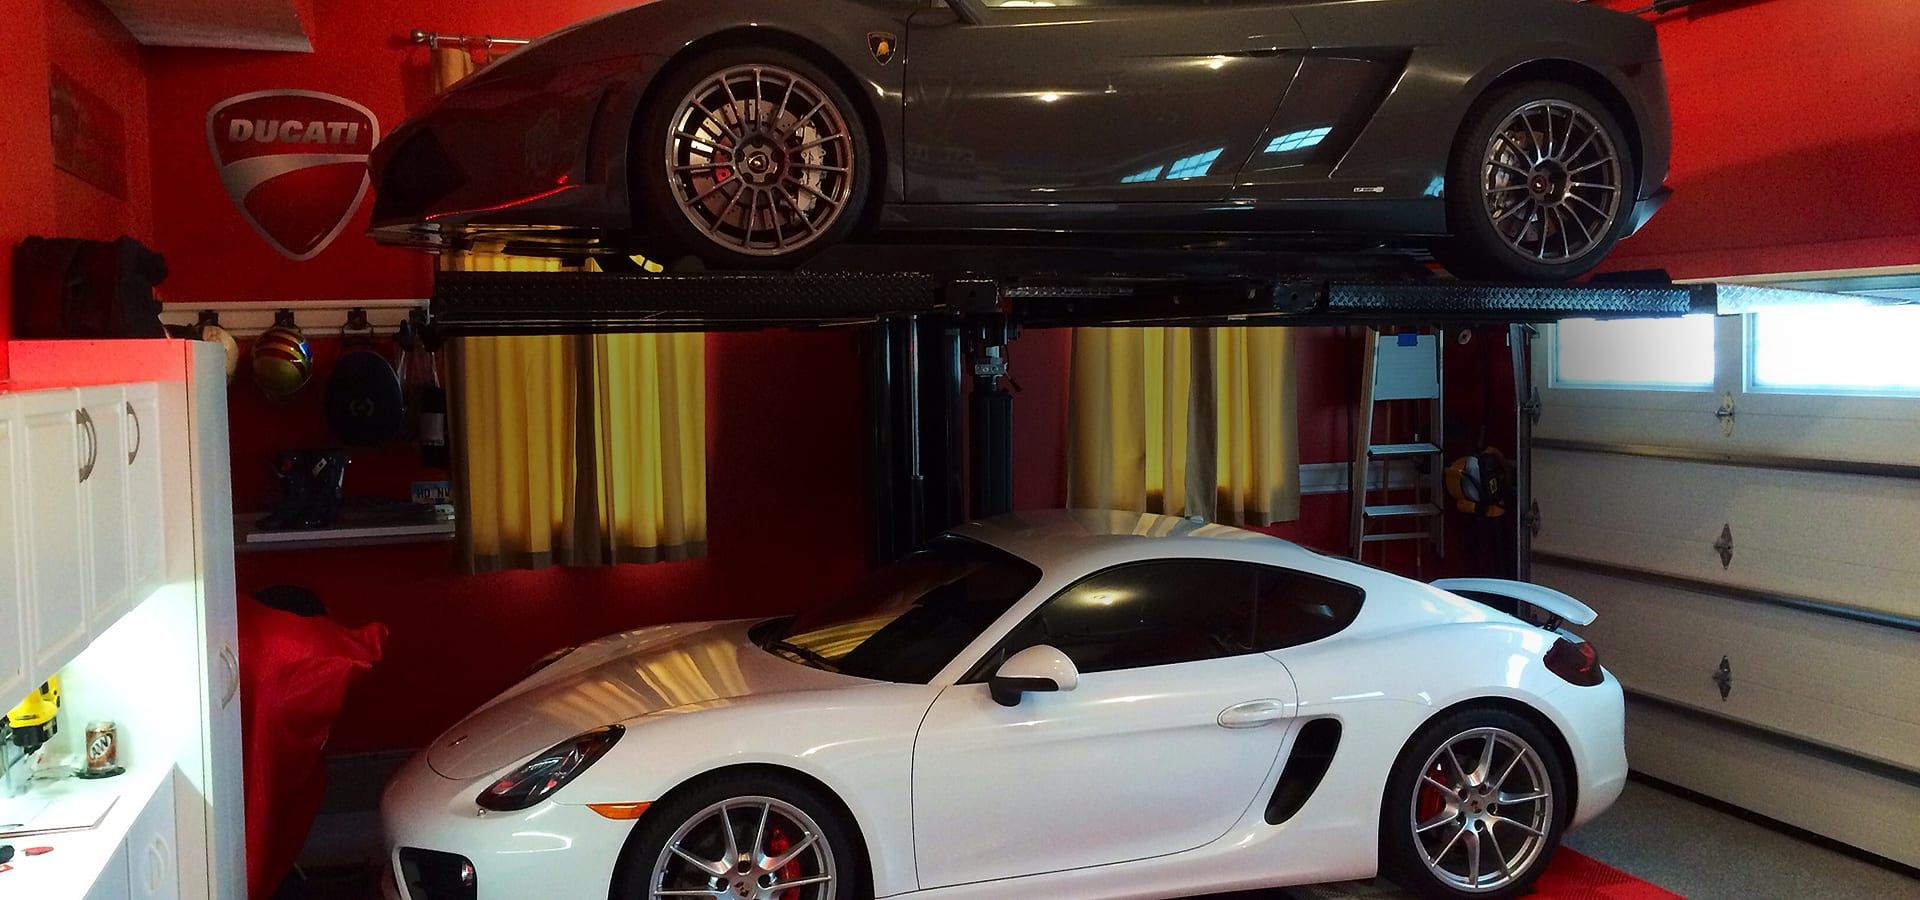 Superb HOME. Custom Residential Car Lifts